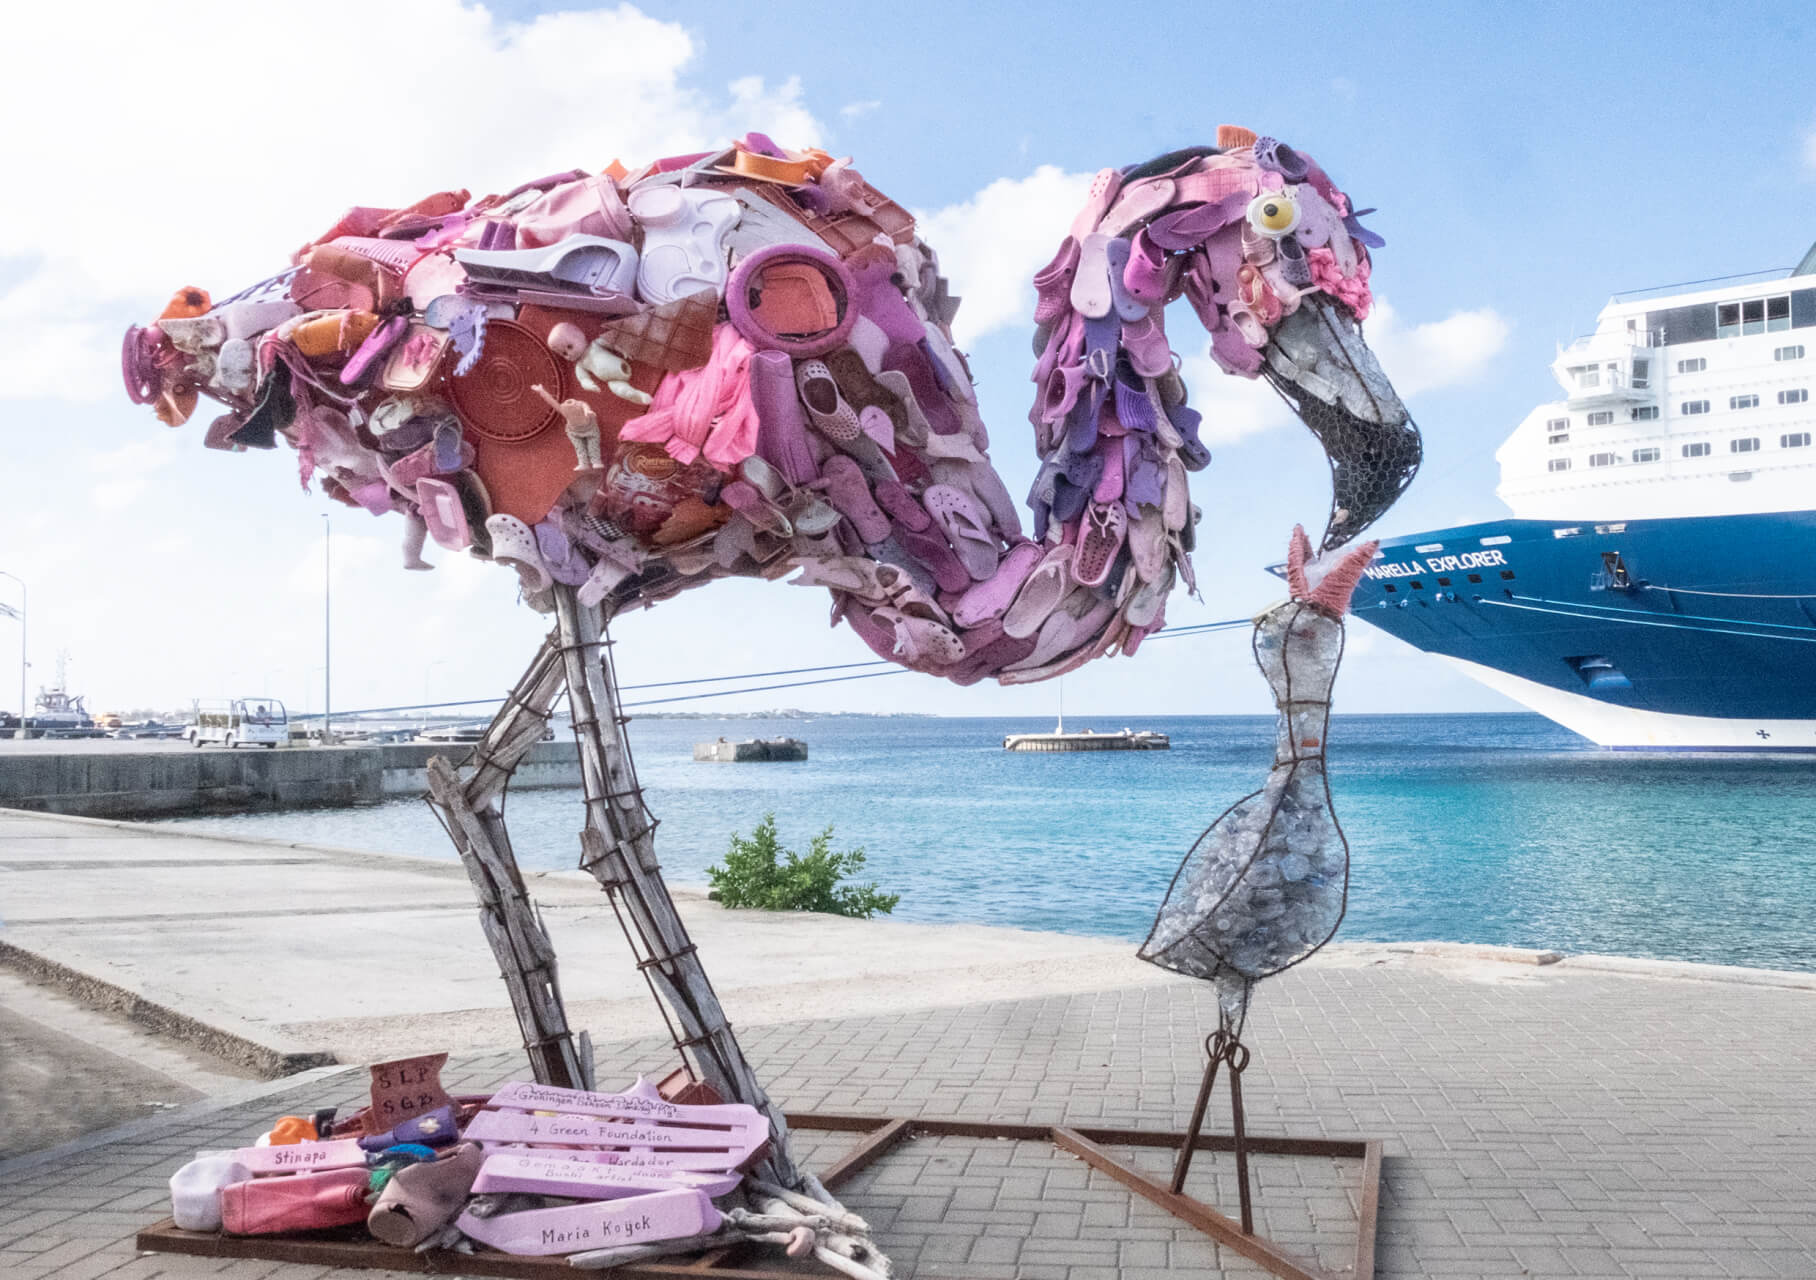 Plastic waste has been collected from local Caribbean beaches in Bonaire. The sculpture of the pink flamingo reminds us that we need to protect precious wildlife from plastic pollution, by Dr. Tania Dey